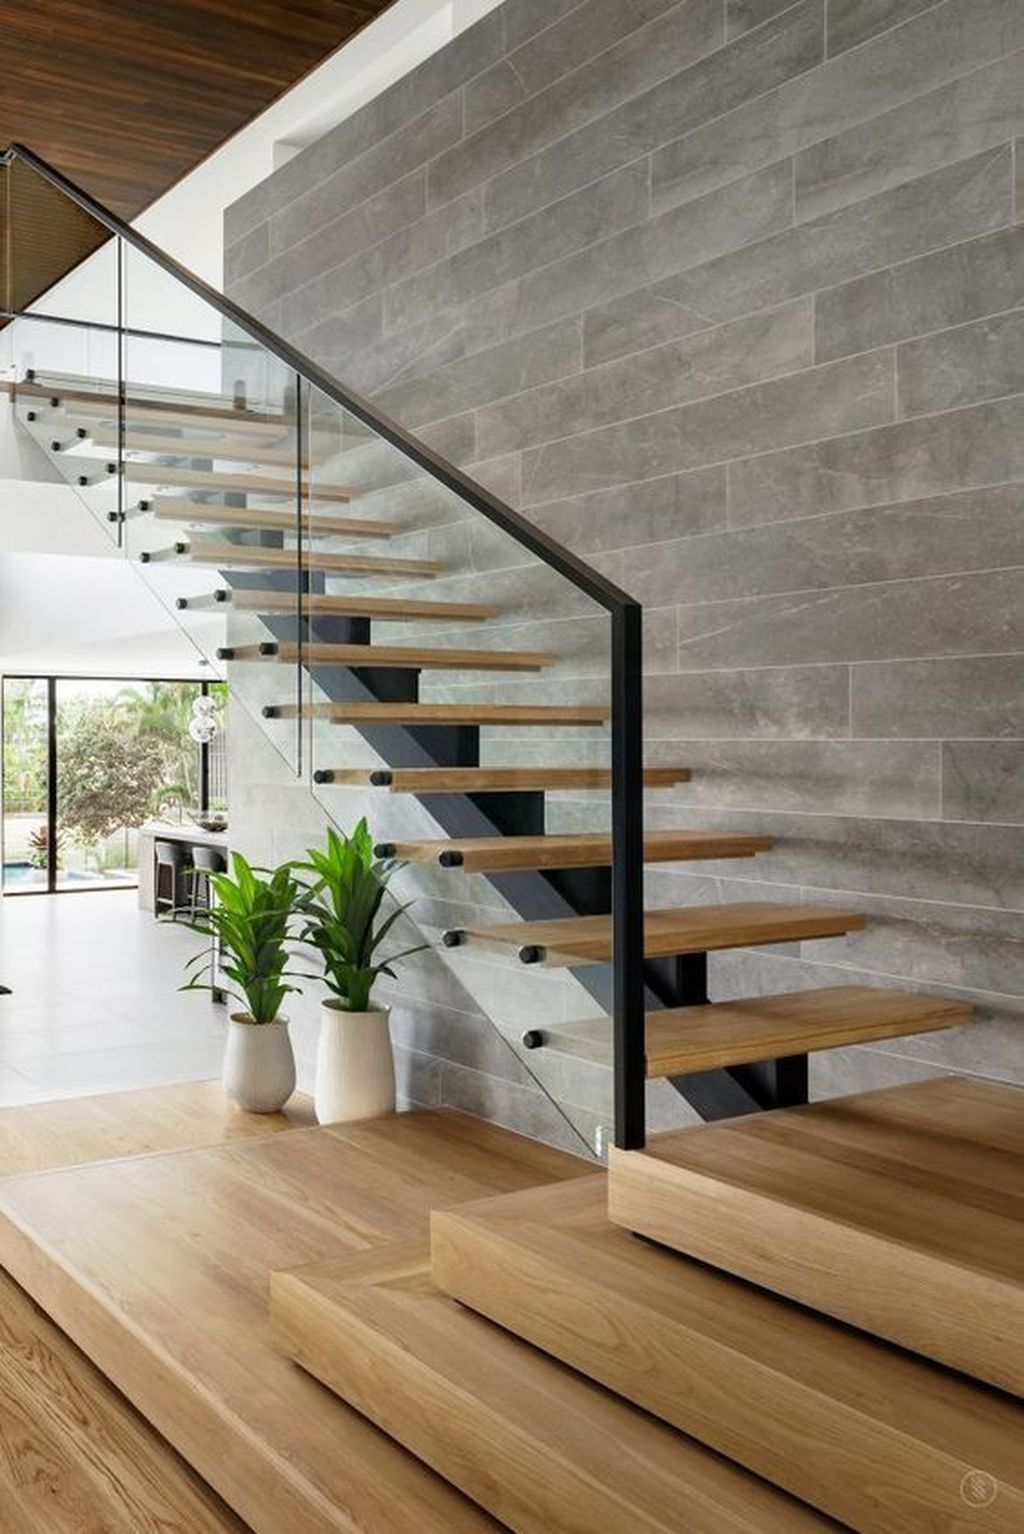 Luxurious Amazing Stairs Idea-   Making stairs is among the various for the most part extraordinary, monotonous setting up commitments for a huge amount of makers. Not all stair creat… ,  ##home#improve#house#diy #deisgn #home #house #improve   Luxurious Amazing Stairs Idea  Rebecca Powell beccabear33 LIVE Making stairs is among the various for the most part extraordinary, monotonous setting up commitments for a huge amount of makers. Not all stair creat… ,  ##home#improve#house#diy #deisgn #ho